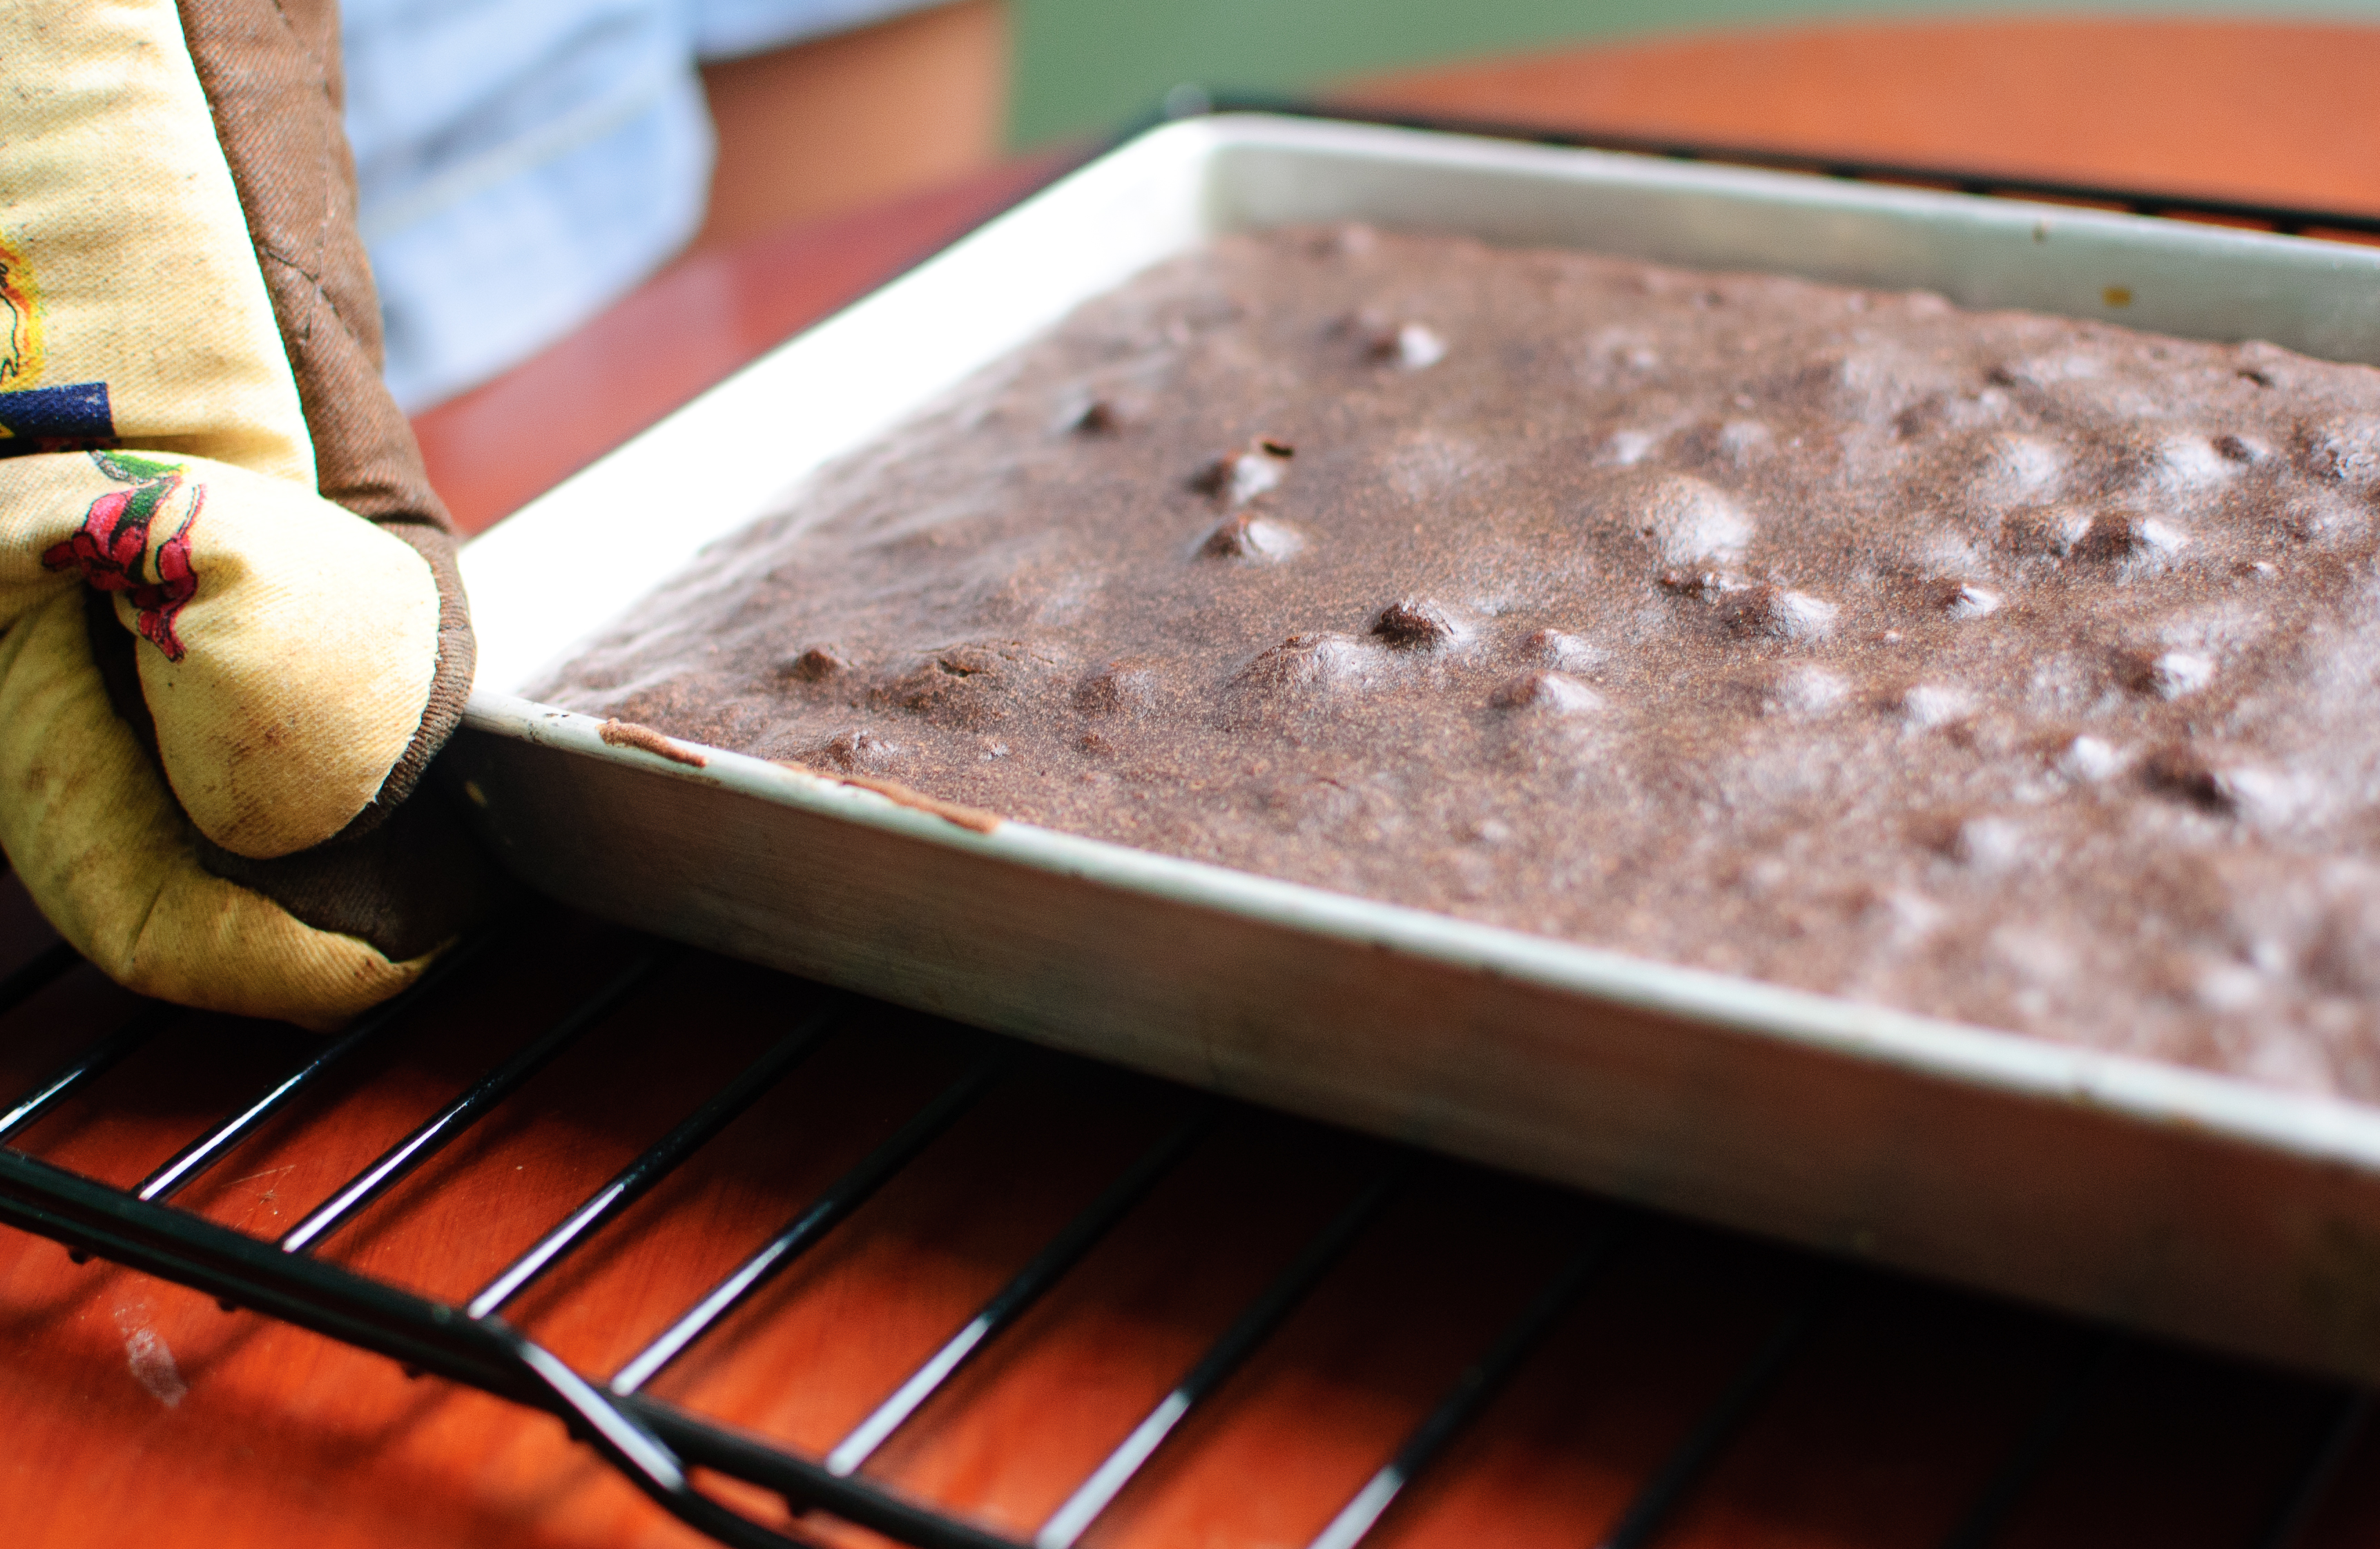 How To Make A Spongy Chocolate Cake 7 Steps With Pictures